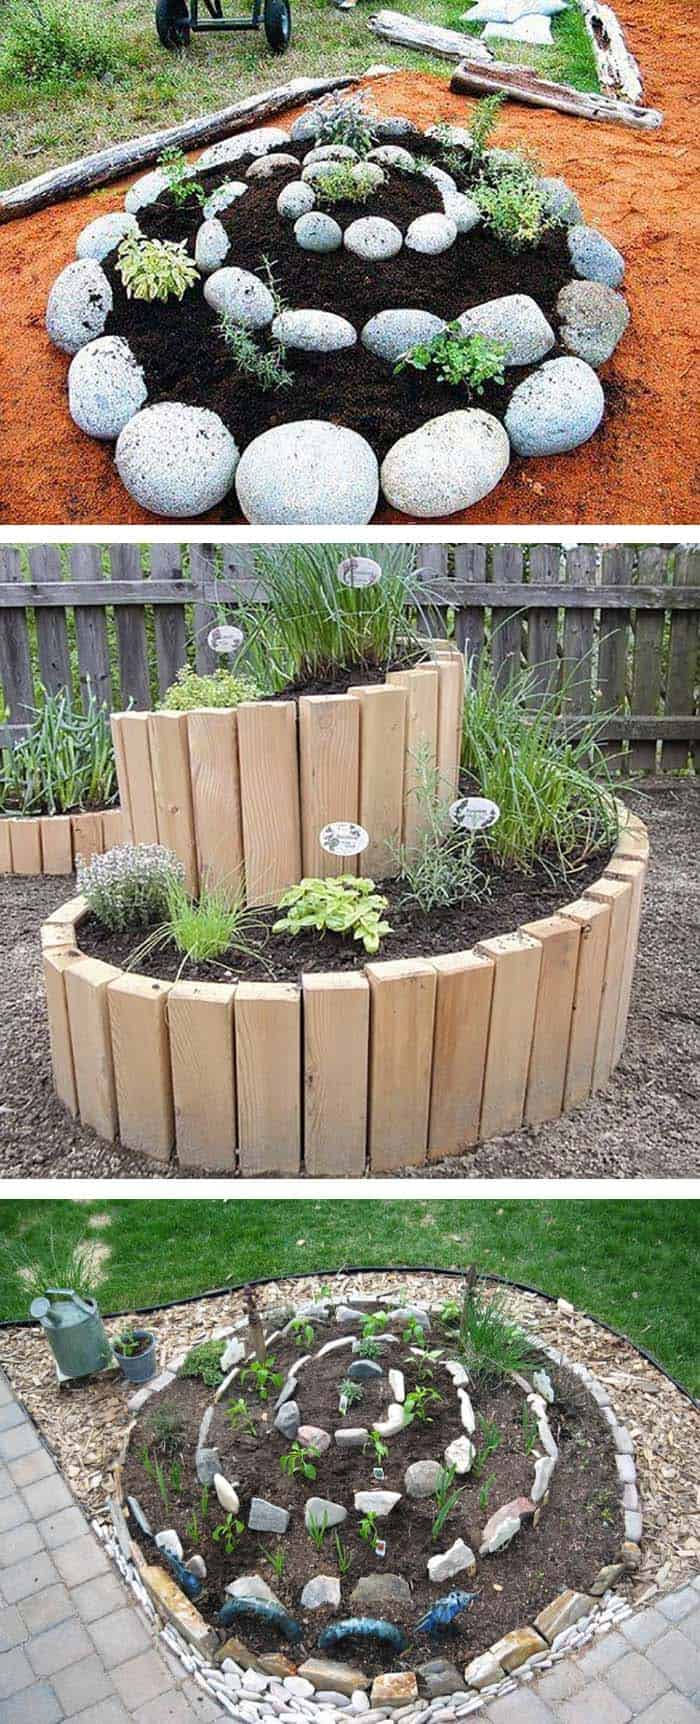 30 Amazing Ideas For Growing A Vegetable Garden In Your ... on Outdoor Vegetable Garden Ideas id=71577